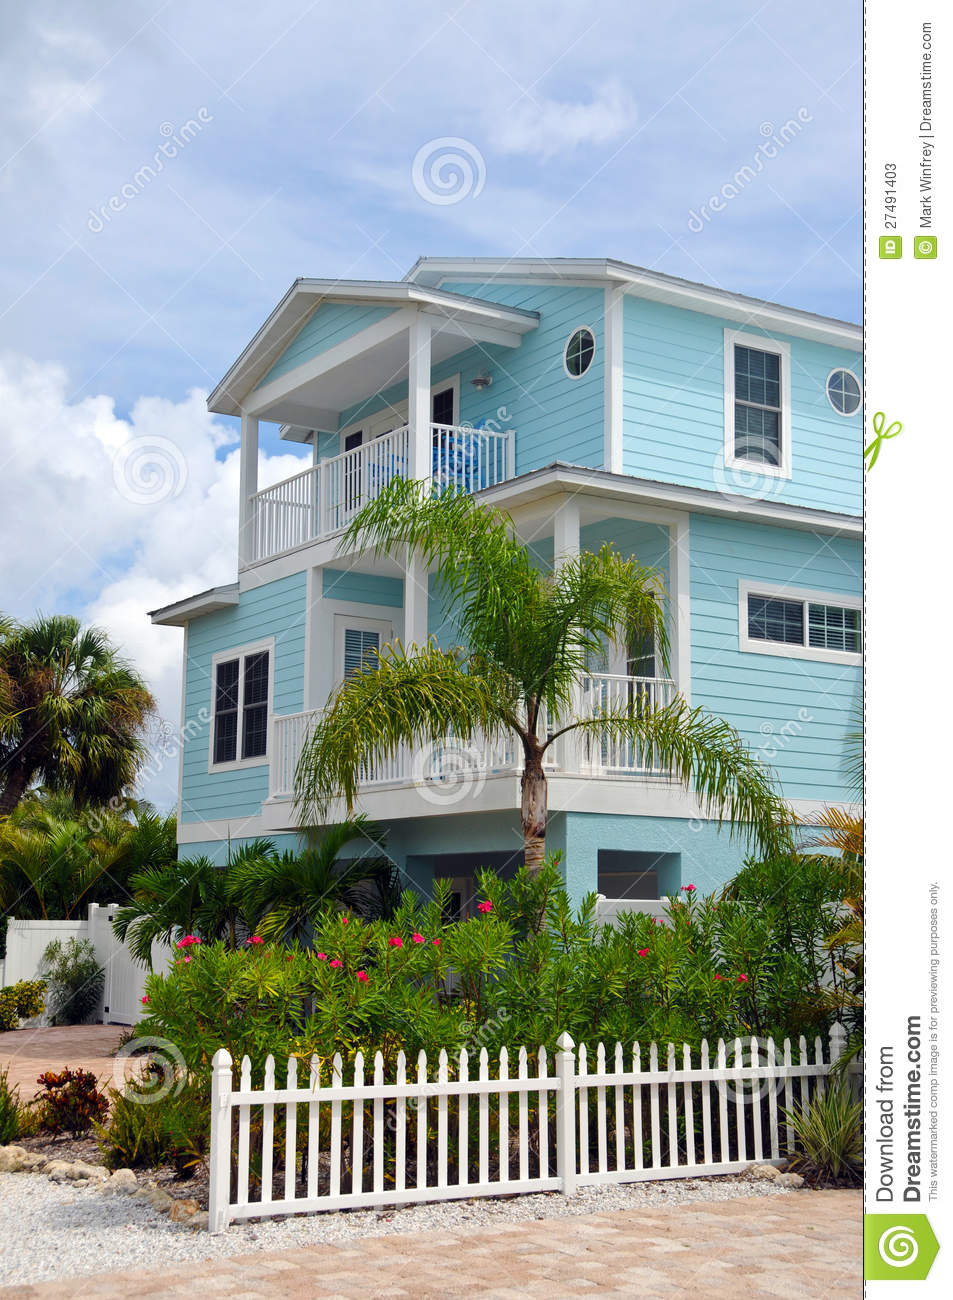 Two story beach house stock photos image 27491403 for 2 story beach house